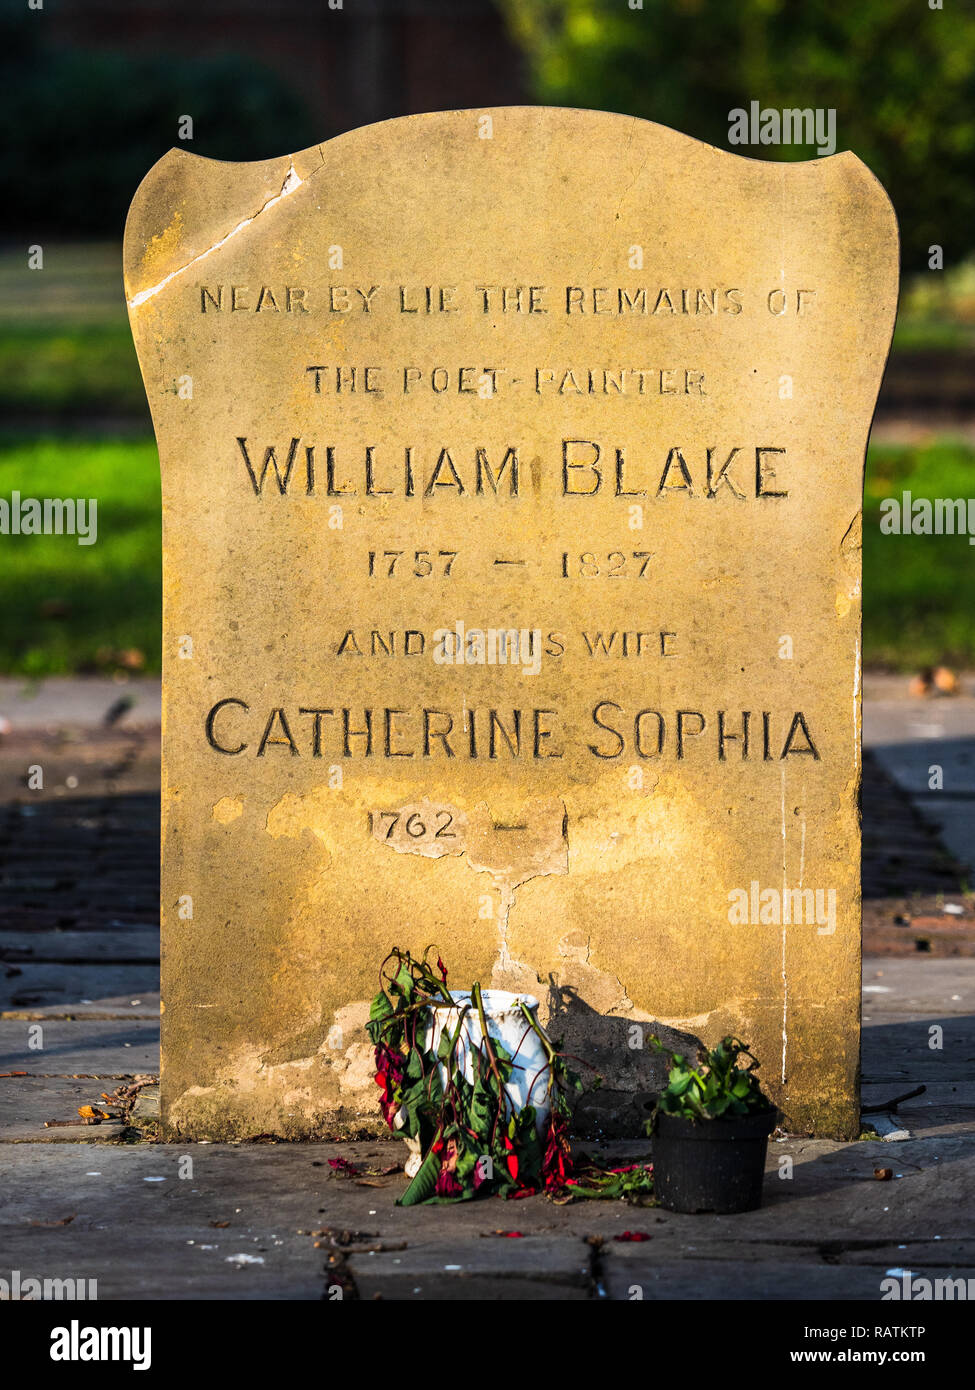 William Blake (1757 – 1827) English poet, painter, and printmaker. Monument to Blake and his wife Catherine in Bunhill Fields Burial Ground London - Stock Image